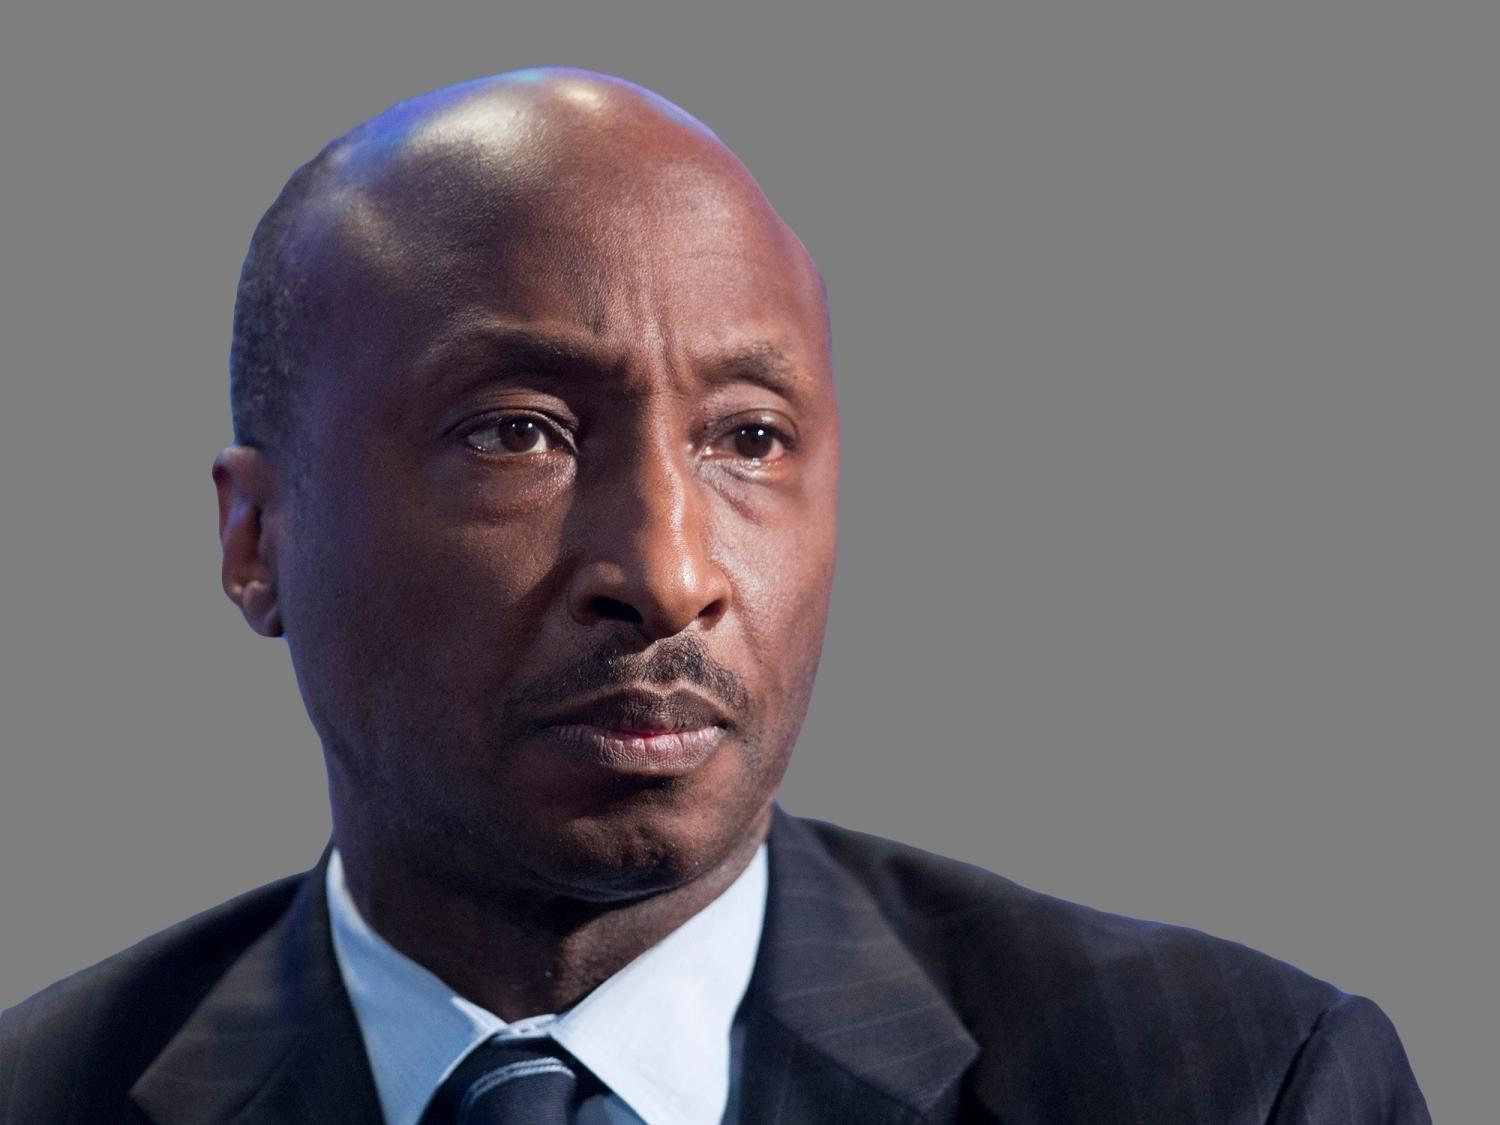 Merck CEO on anti-vaccine movement: 'We have to counter some misinformation'